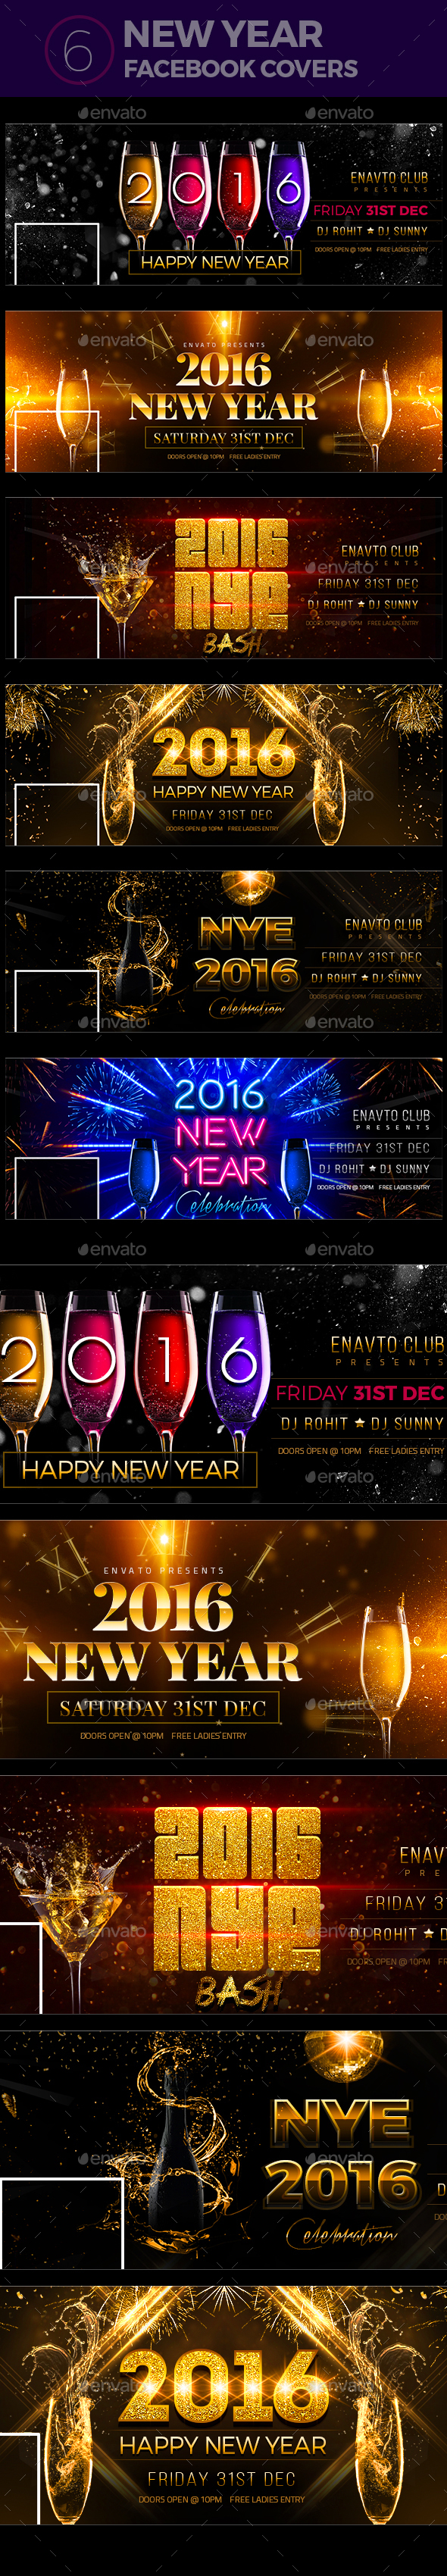 New Year Party Facebook Covers - Facebook Timeline Covers Social Media